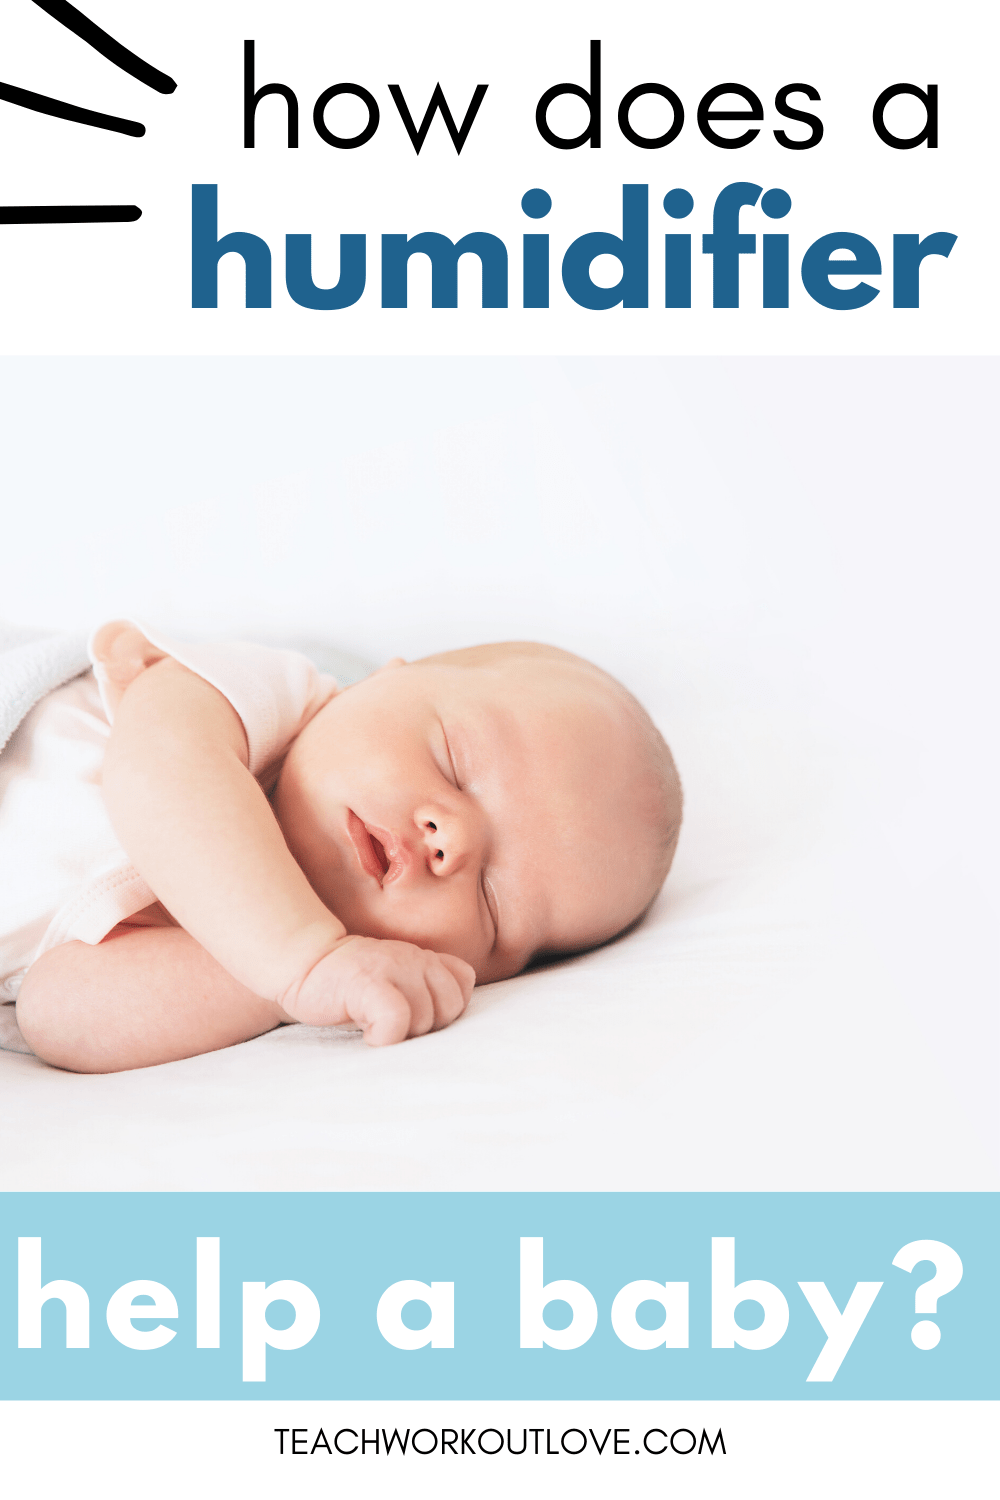 If you want your nursery perfect, consider a humidifier. This article gives you the answer what a humidifier does for a baby and many more related topics.